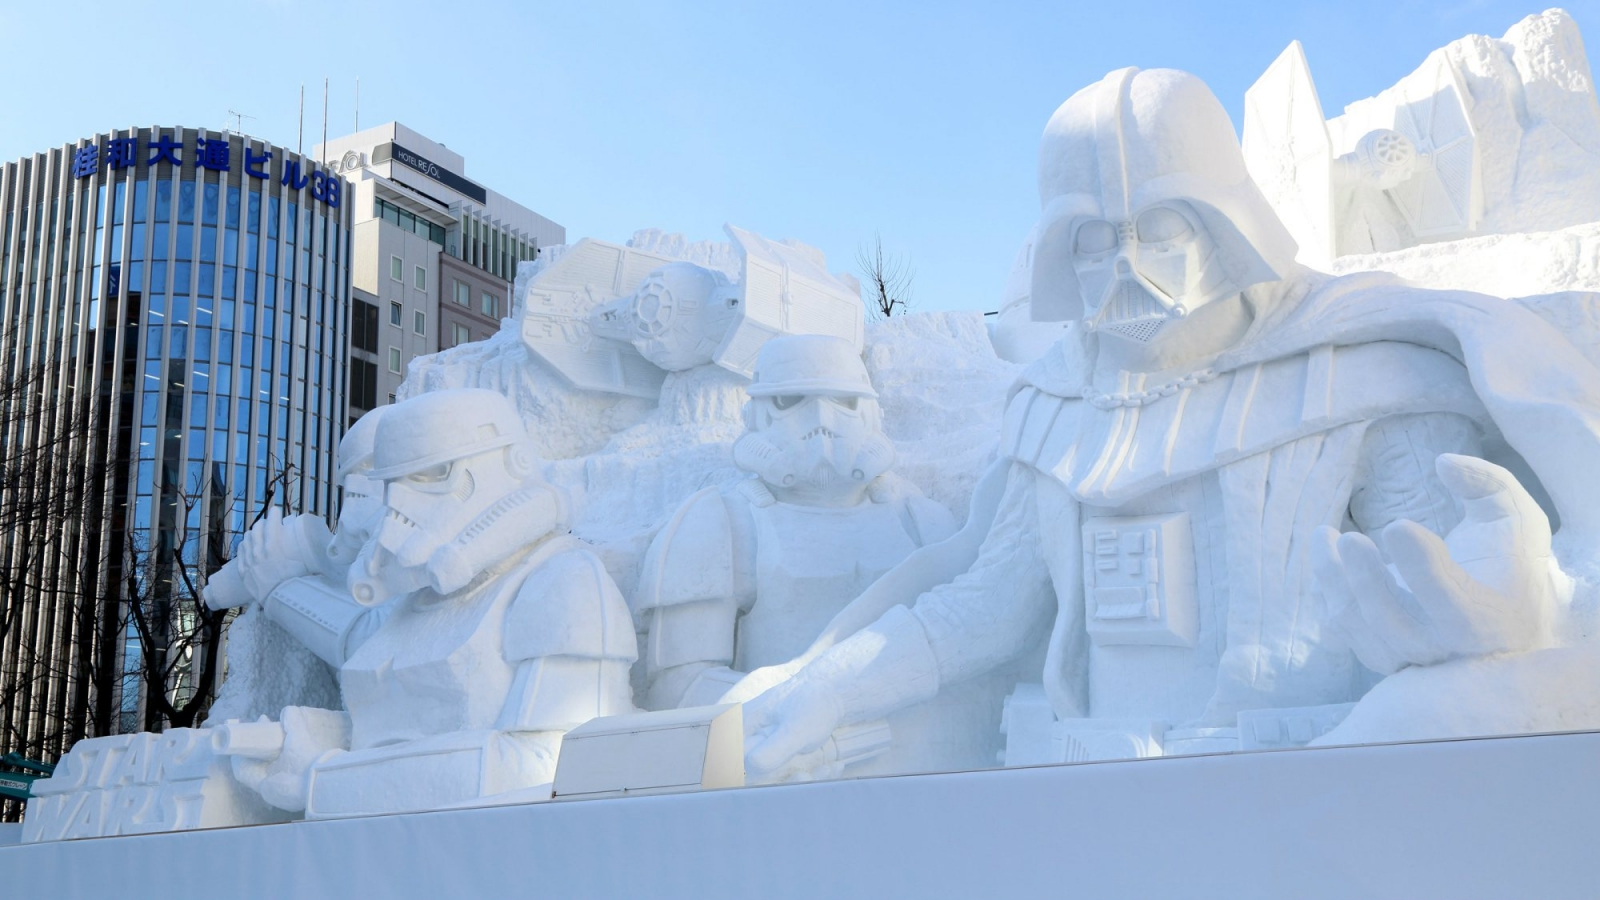 Star Wars and Frozen characters featured in Japan's snow festival